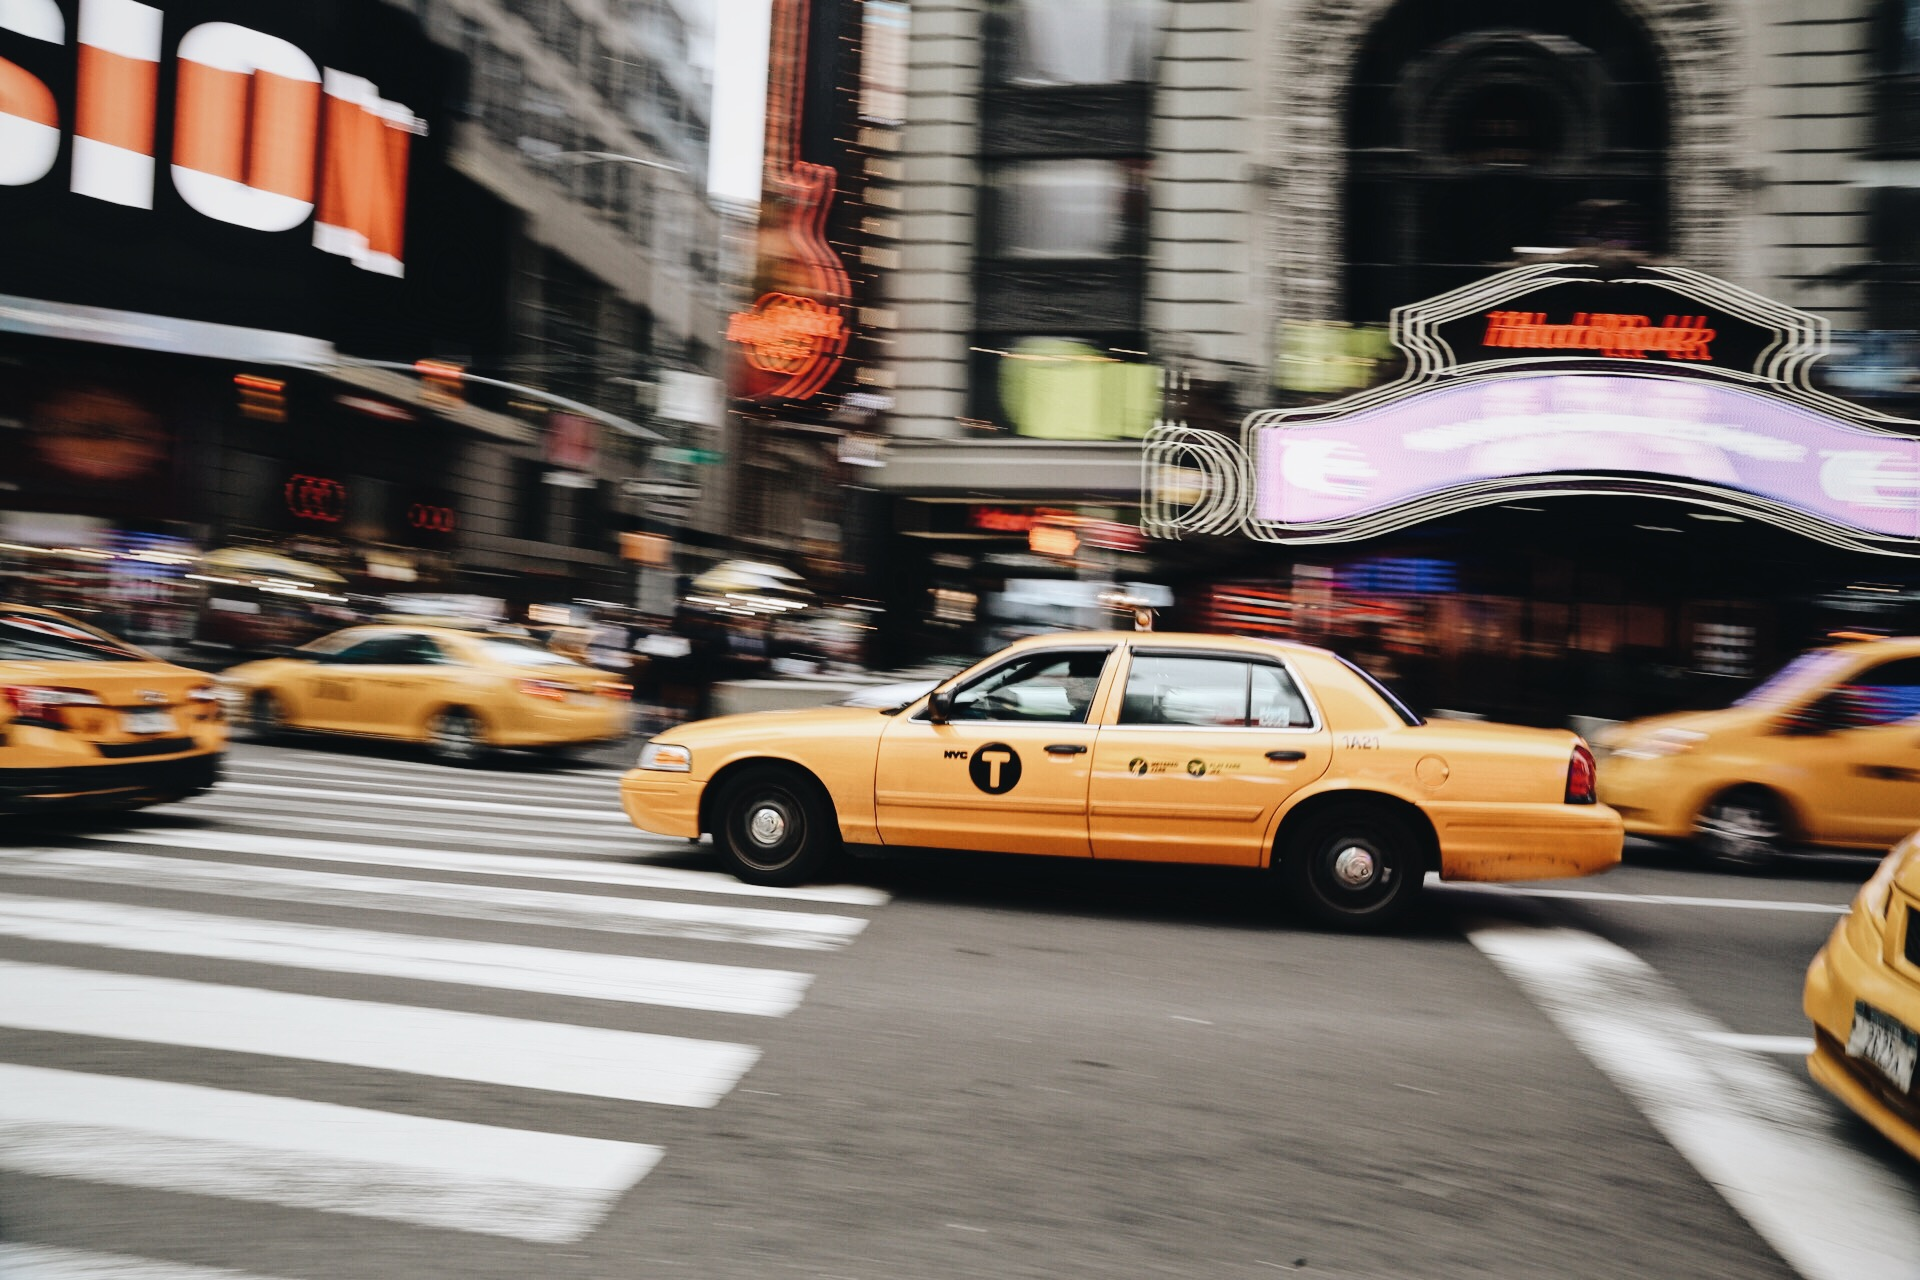 Taxi-new-york-voyage-blog-onmyway.JPG